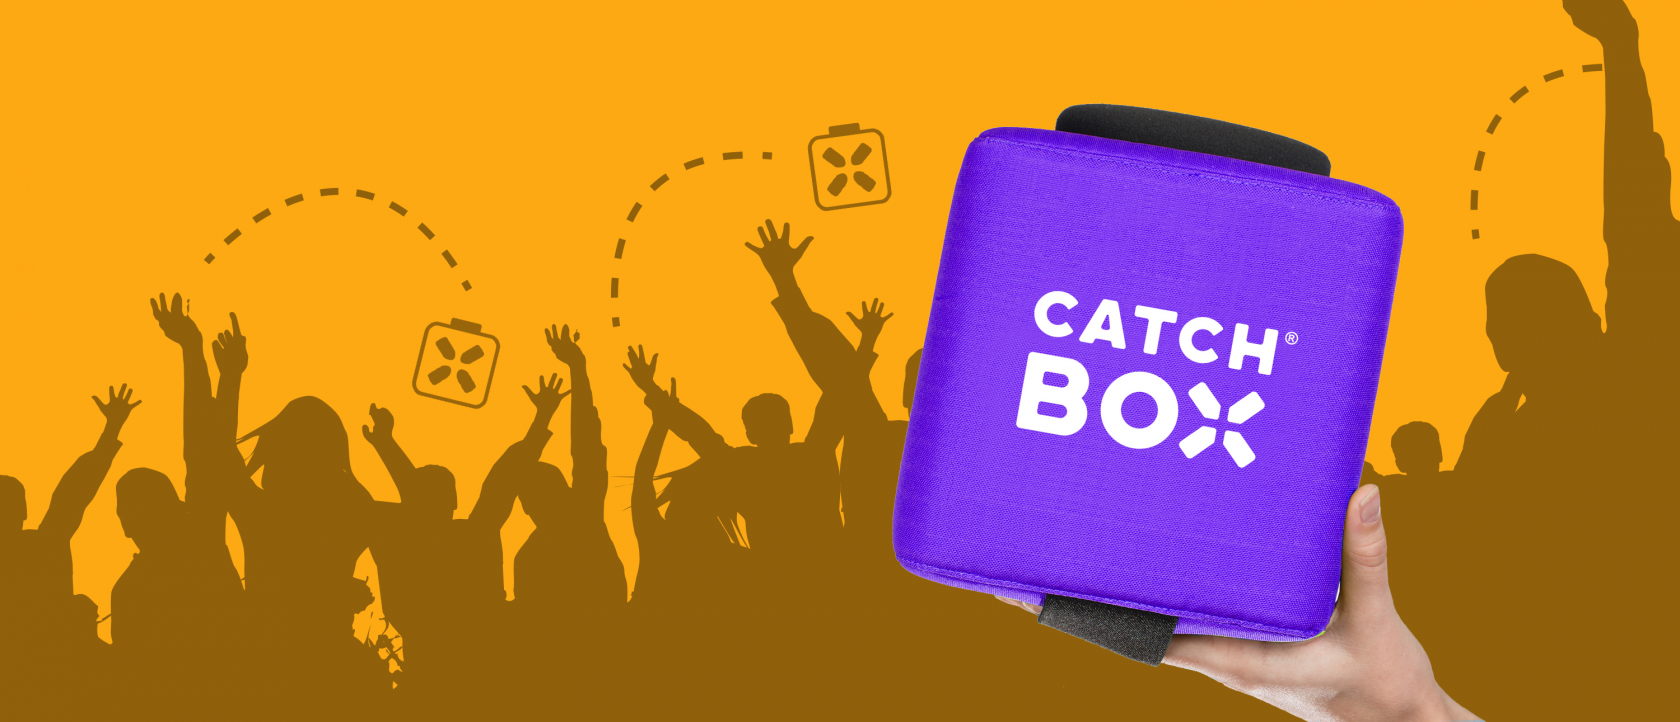 vision sound & light catch box